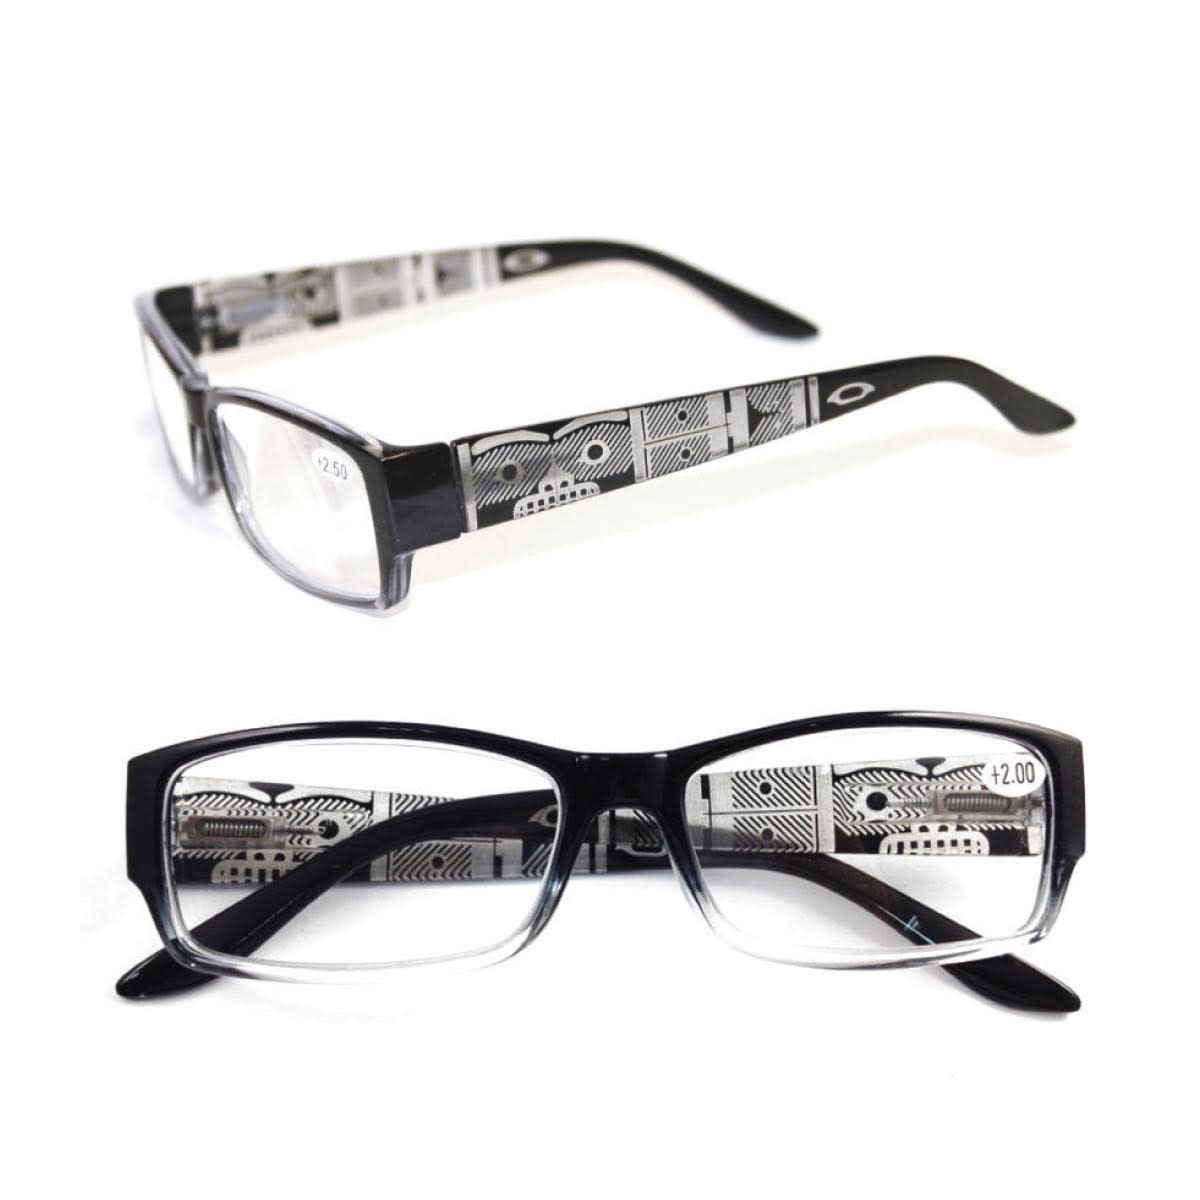 Adult Reading Glasses-4